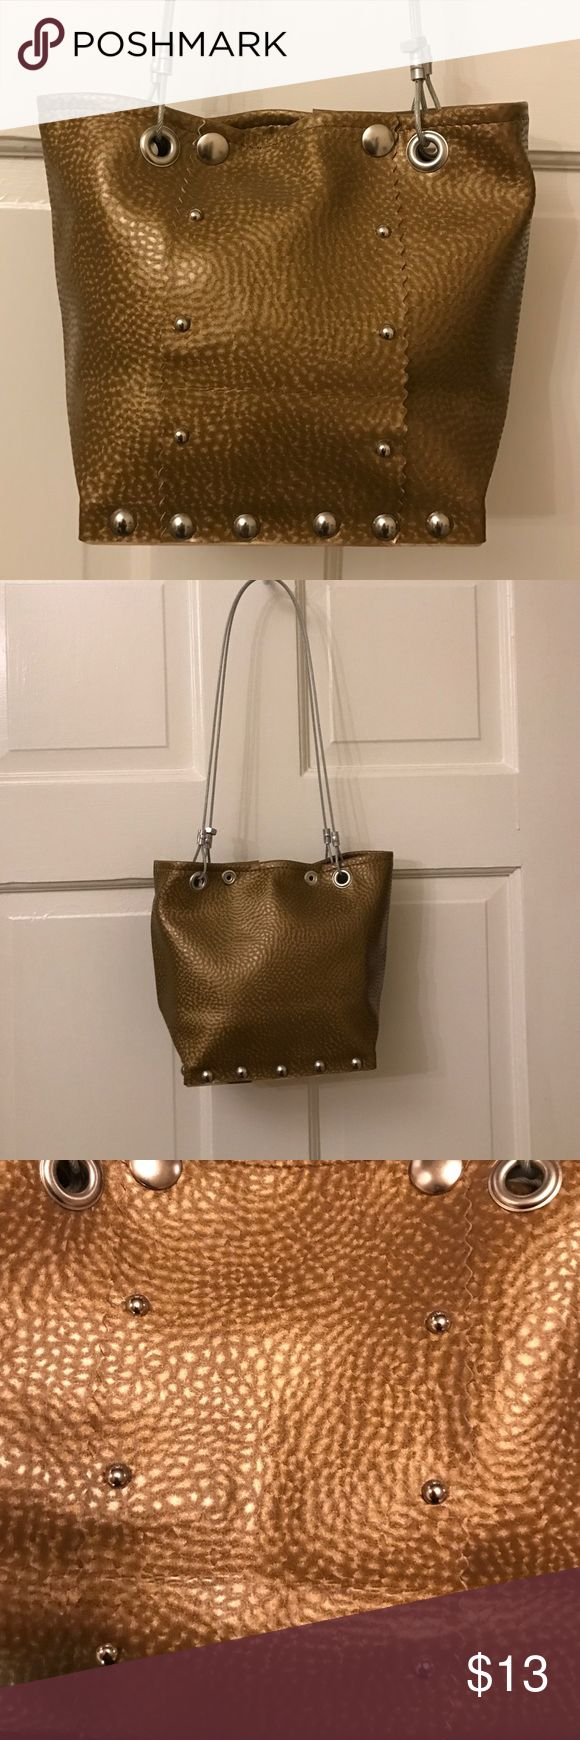 """Hardware by Renee Tote handbag made from hardware and recycled materials. Strong, sexy, smart bag is the company motto. Has signature steel but. Double snap closure. In mint condition. 6.5"""" x 7.5"""" x 3.5"""" 10"""" strap drop hardwear by renee Bags Totes"""